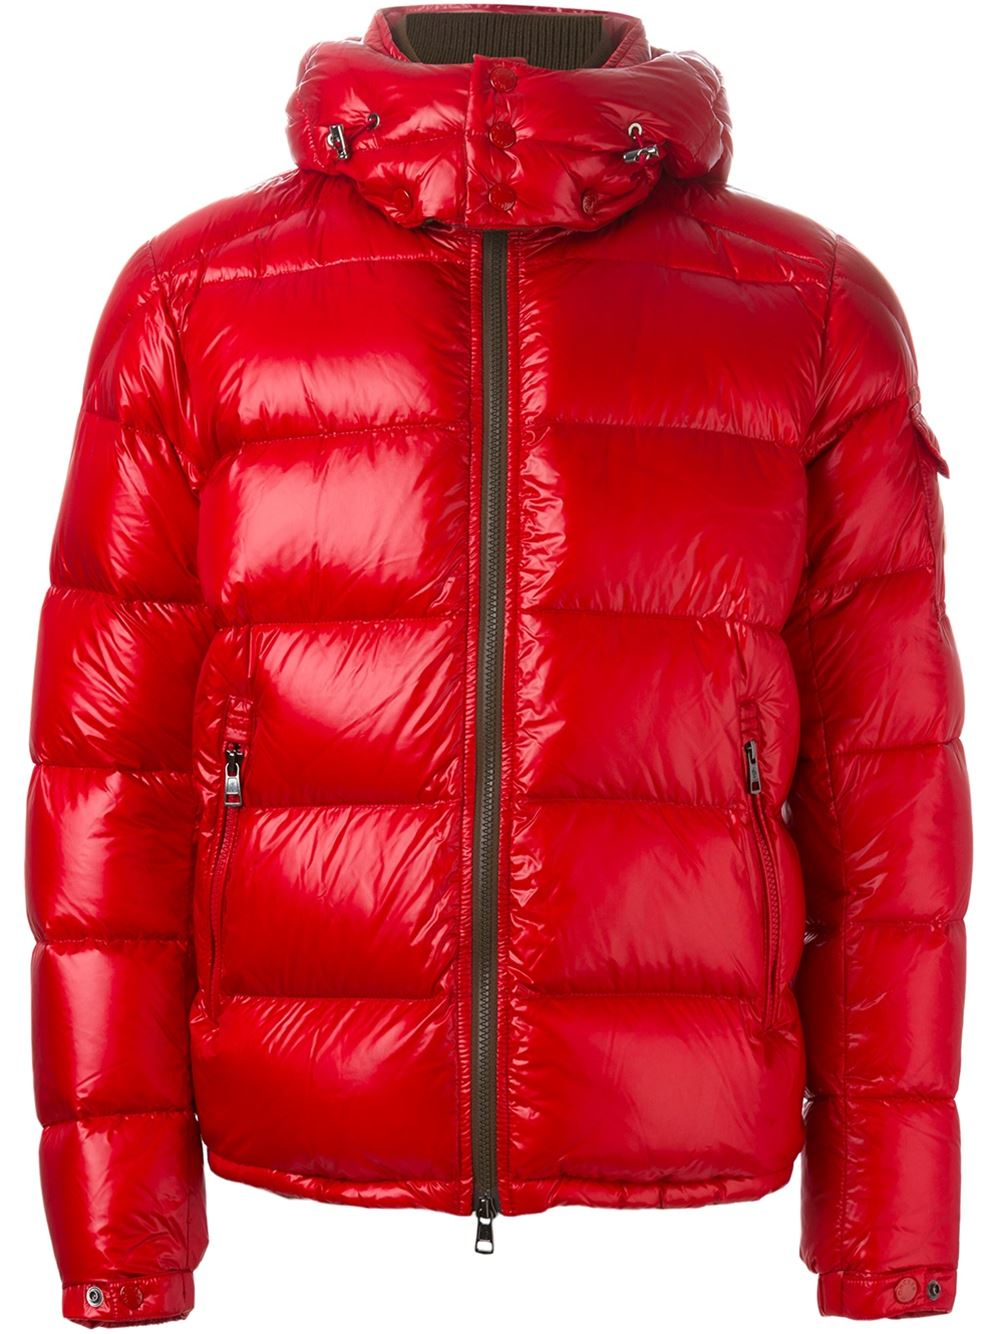 moncler 39 thoule 39 padded jacket in red for men lyst. Black Bedroom Furniture Sets. Home Design Ideas